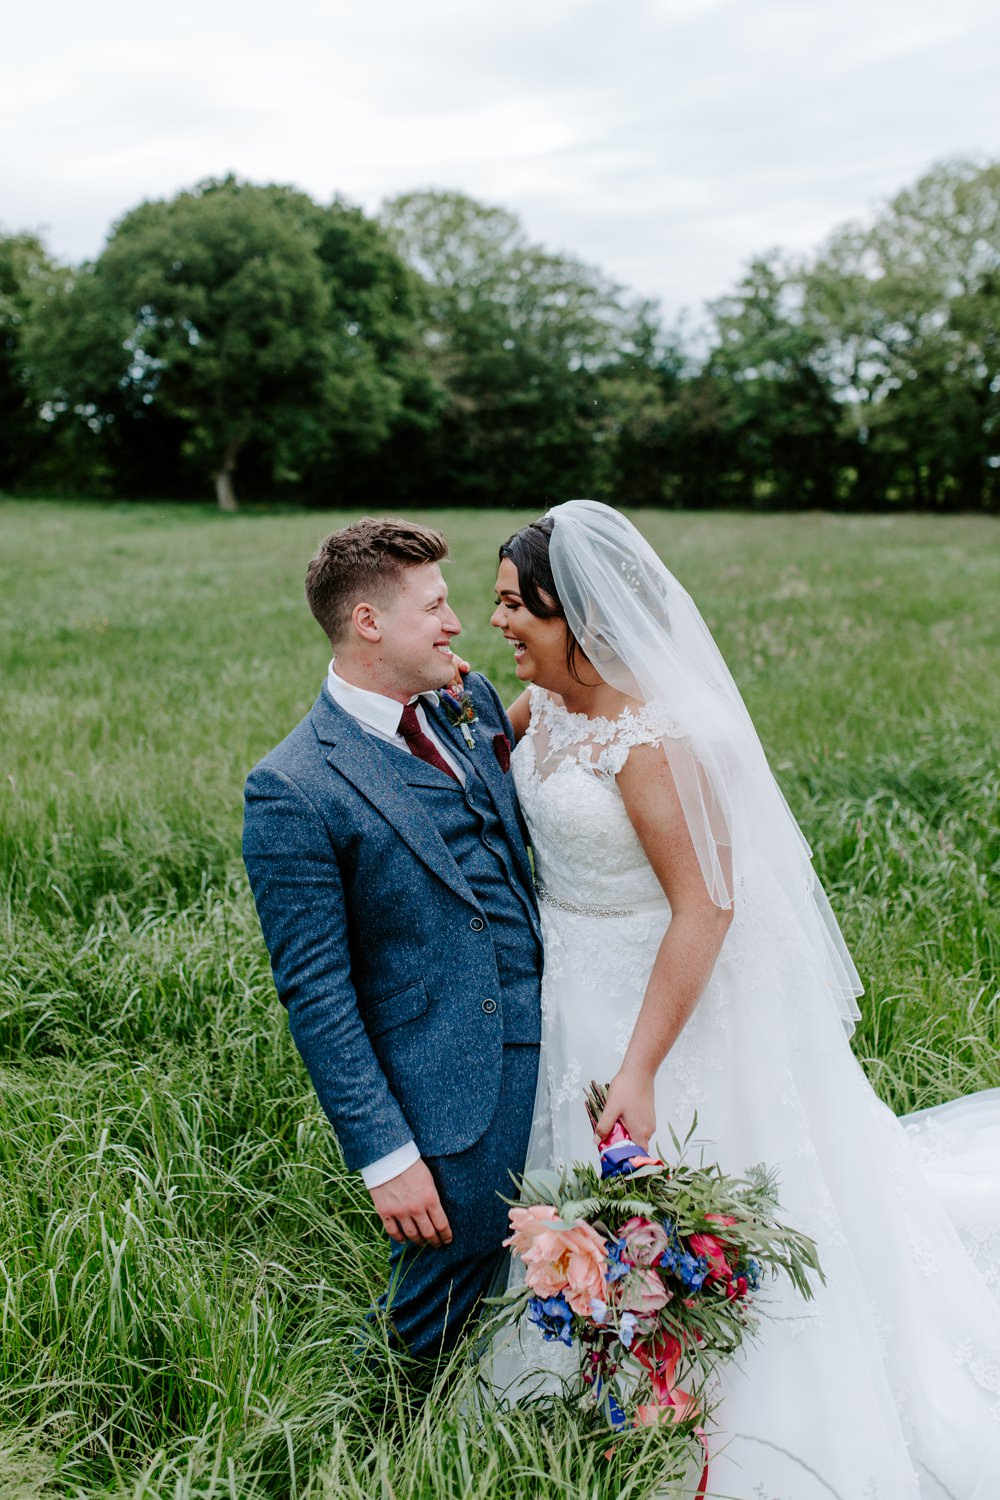 Bride Bridal Lace Dress Gown Sweetheart Neckline Boat Neck Blue Tweed Suit Groom Veil Tipis Riley Green Wedding Jessica Isherwood Photography